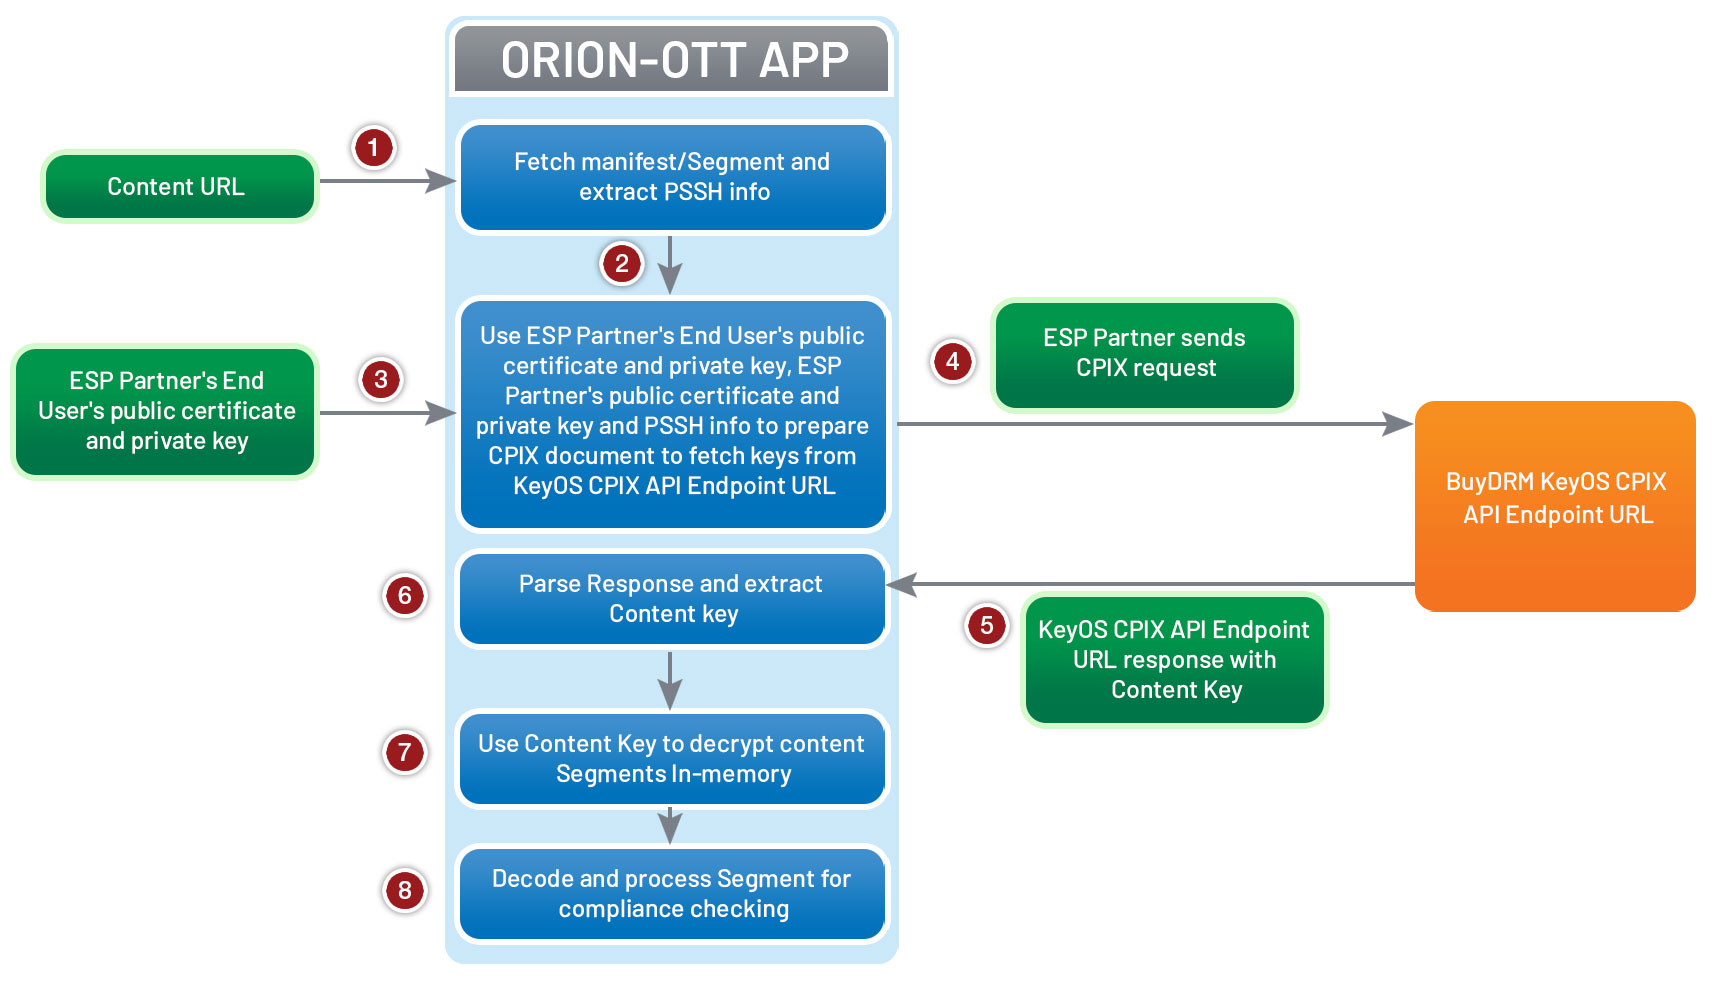 ORION-OTT-BuyDRM Integration